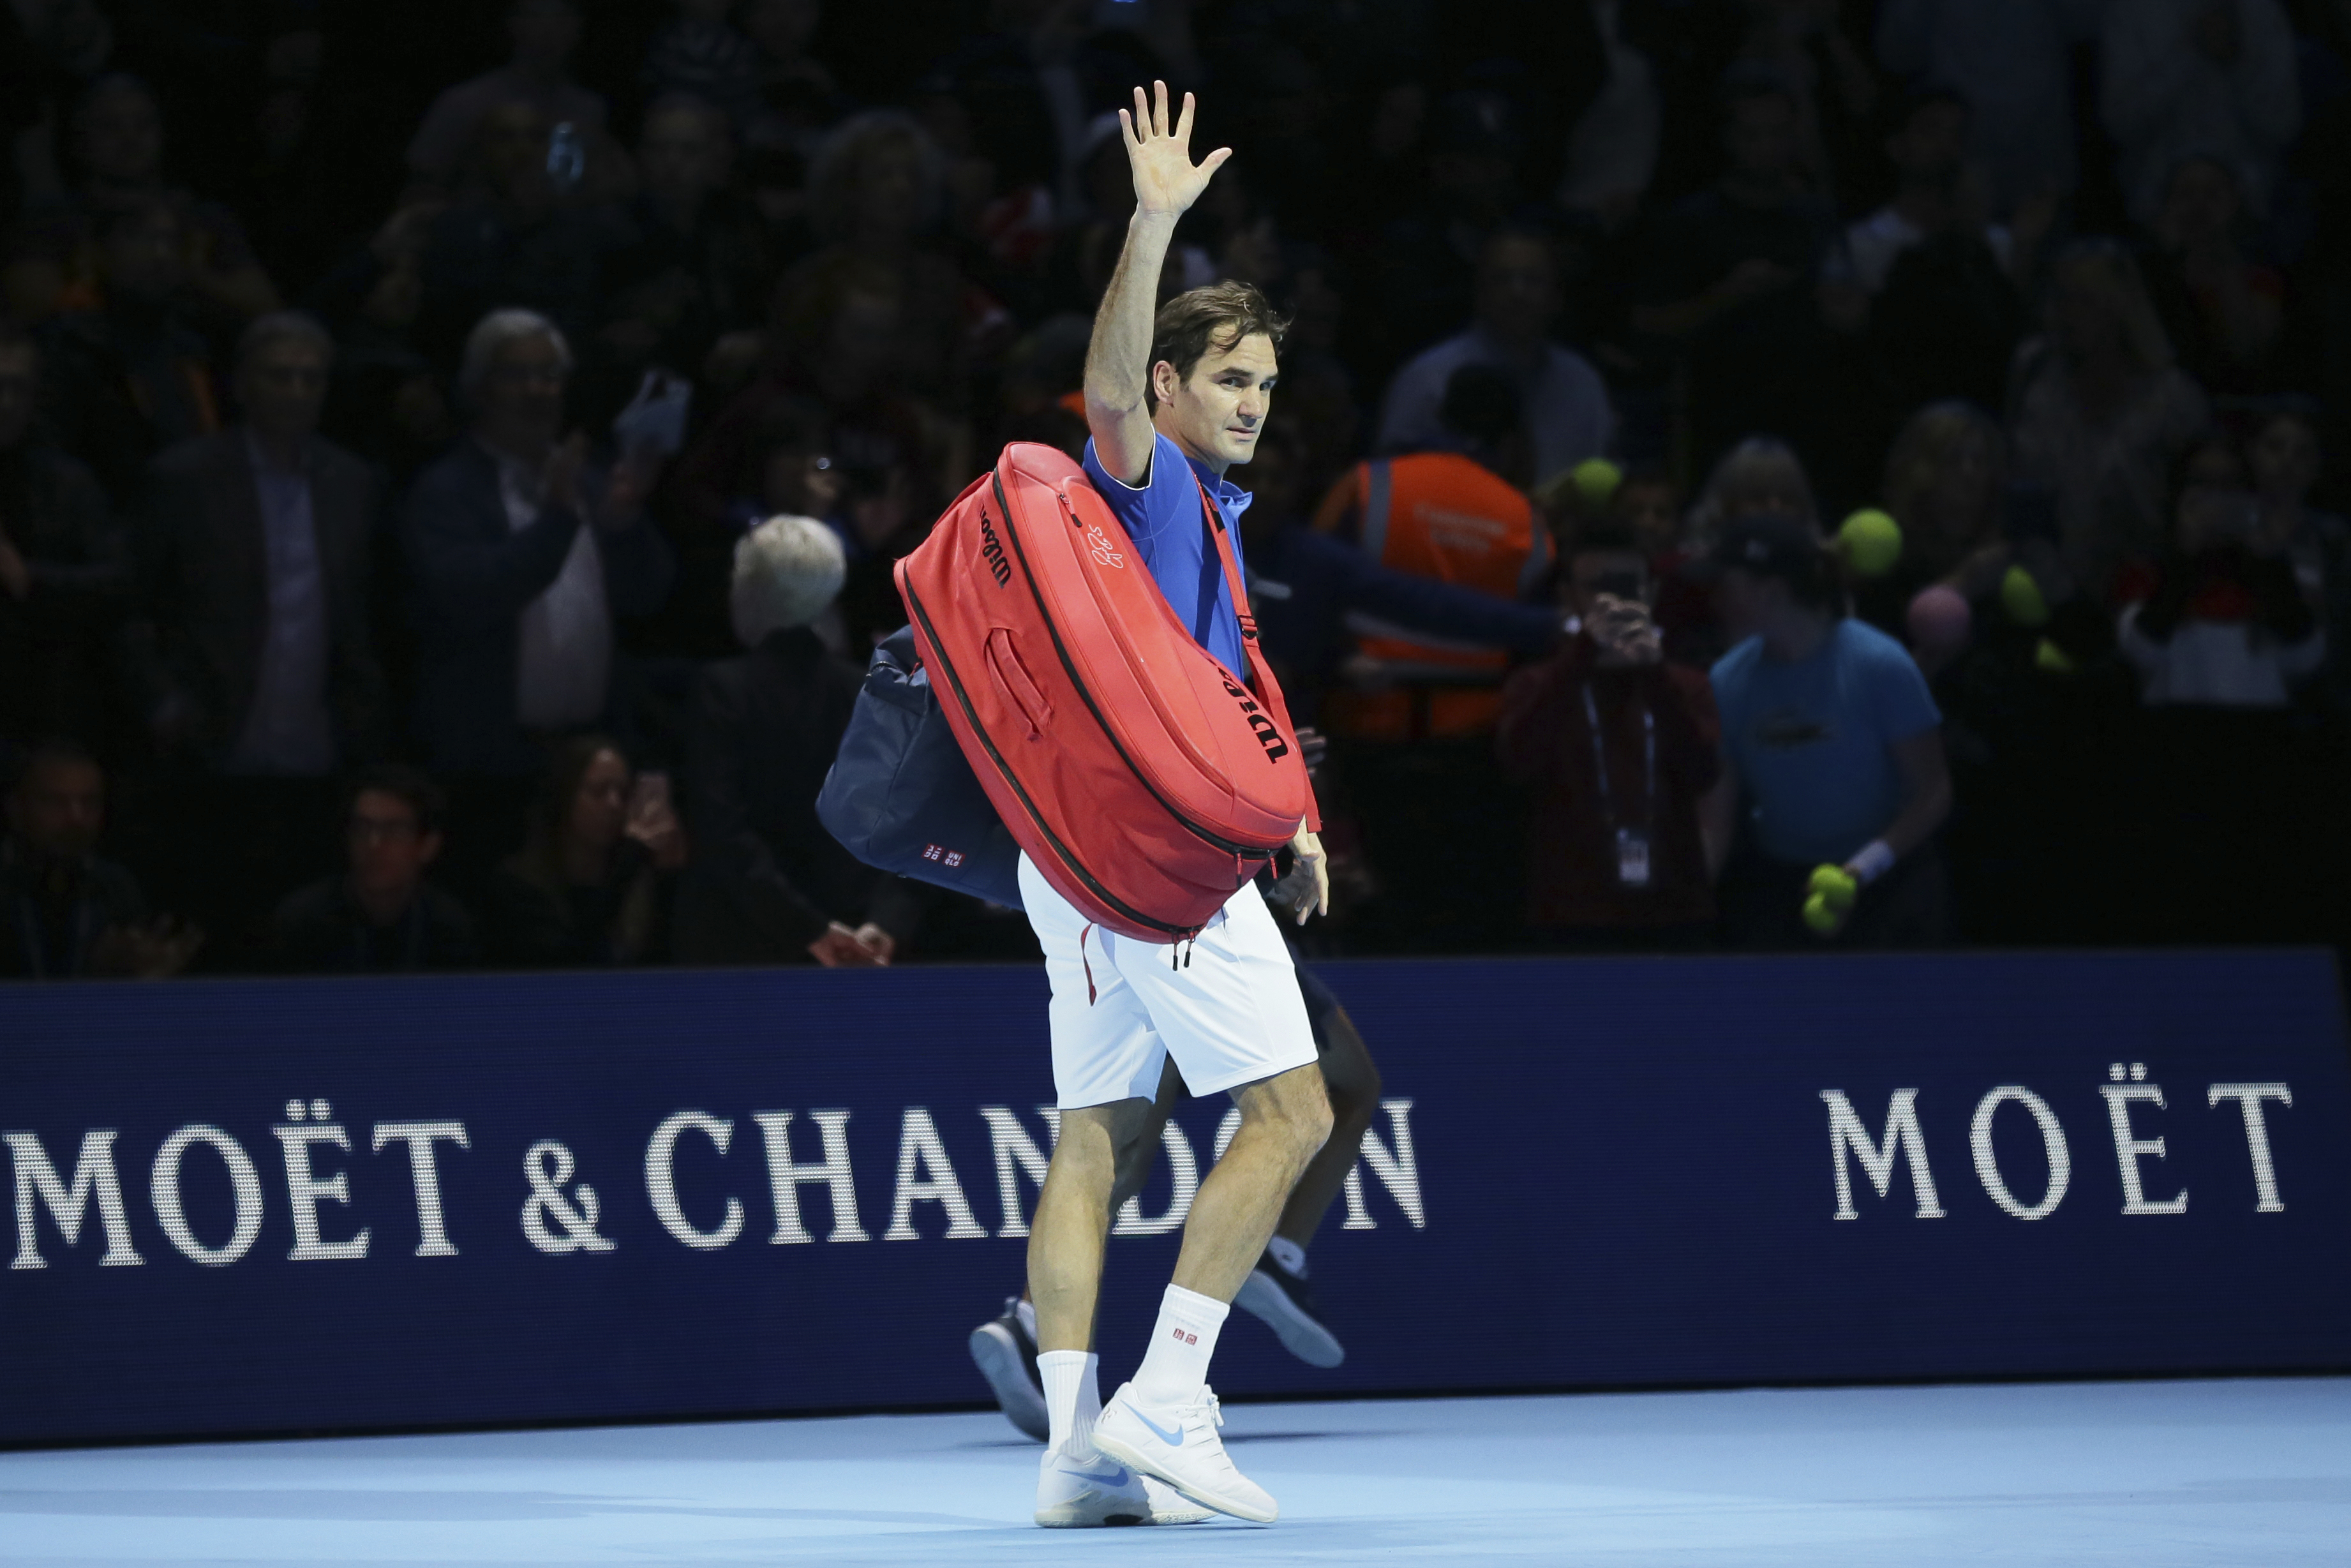 Zverev halts Federer's 100th career title campaign; to square up with Djokovic for ATP Finals crown